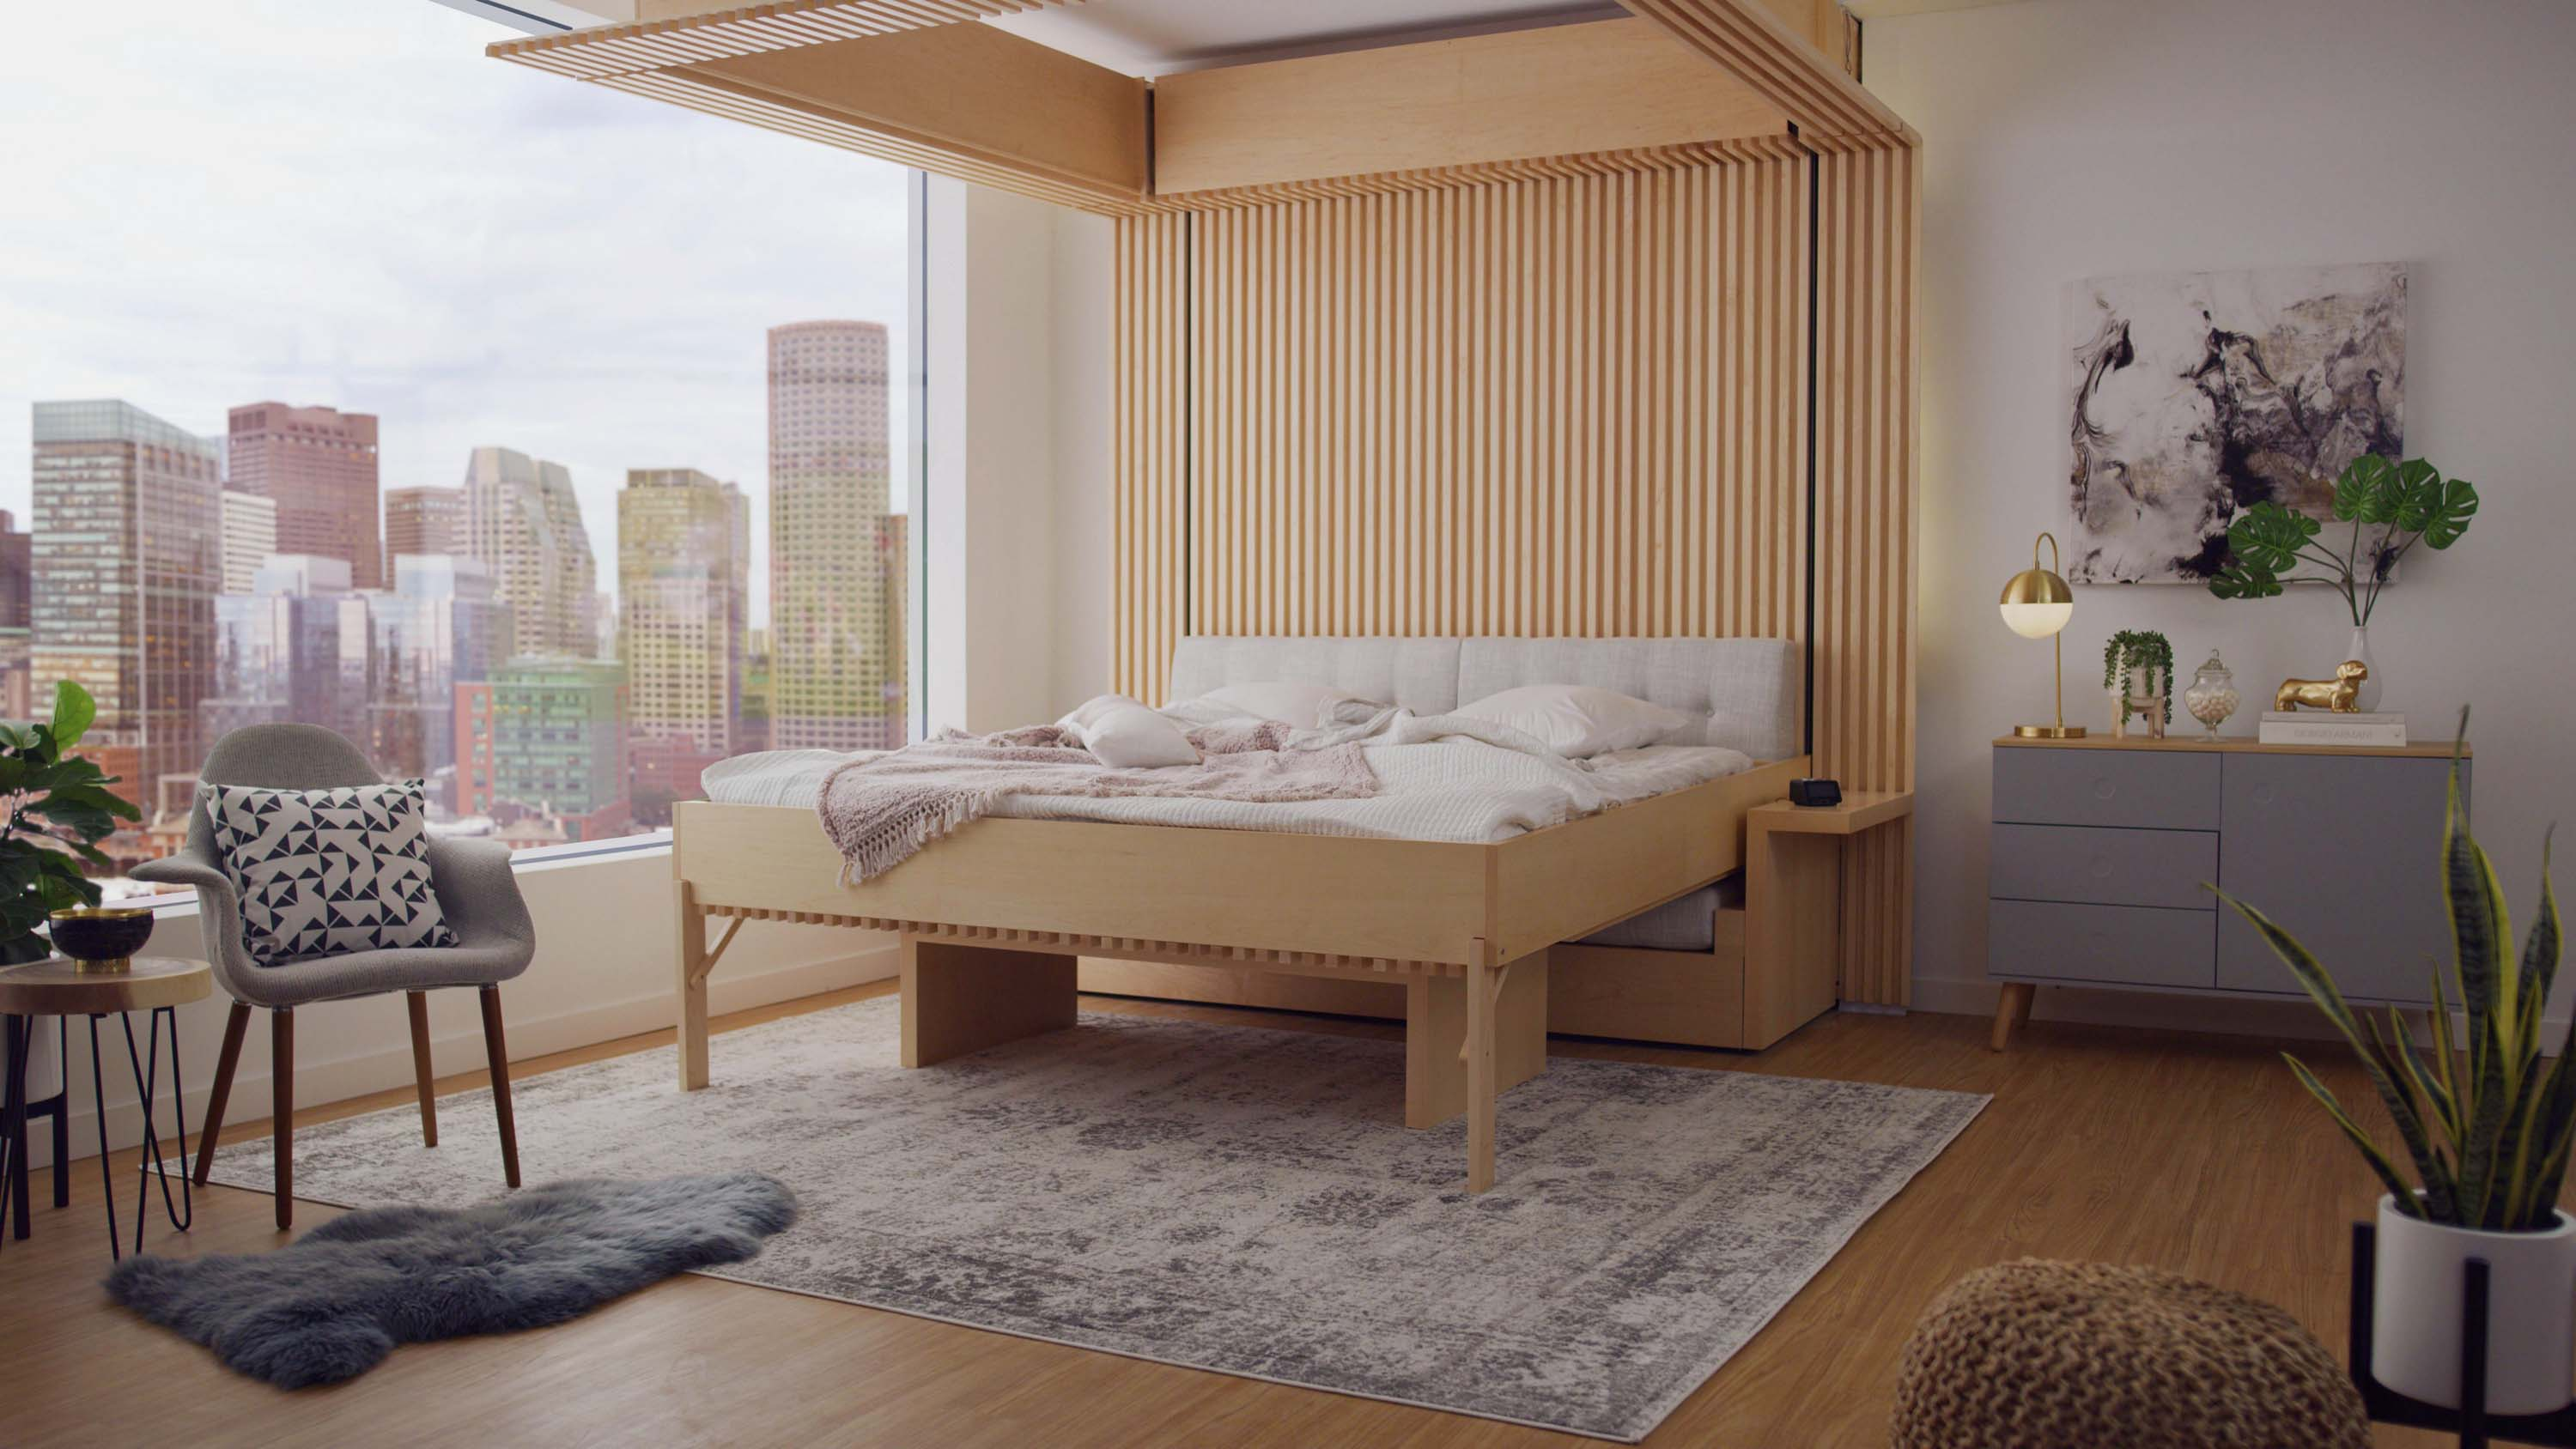 Ori's Cloud Bed inside a beautiful, modern apartment